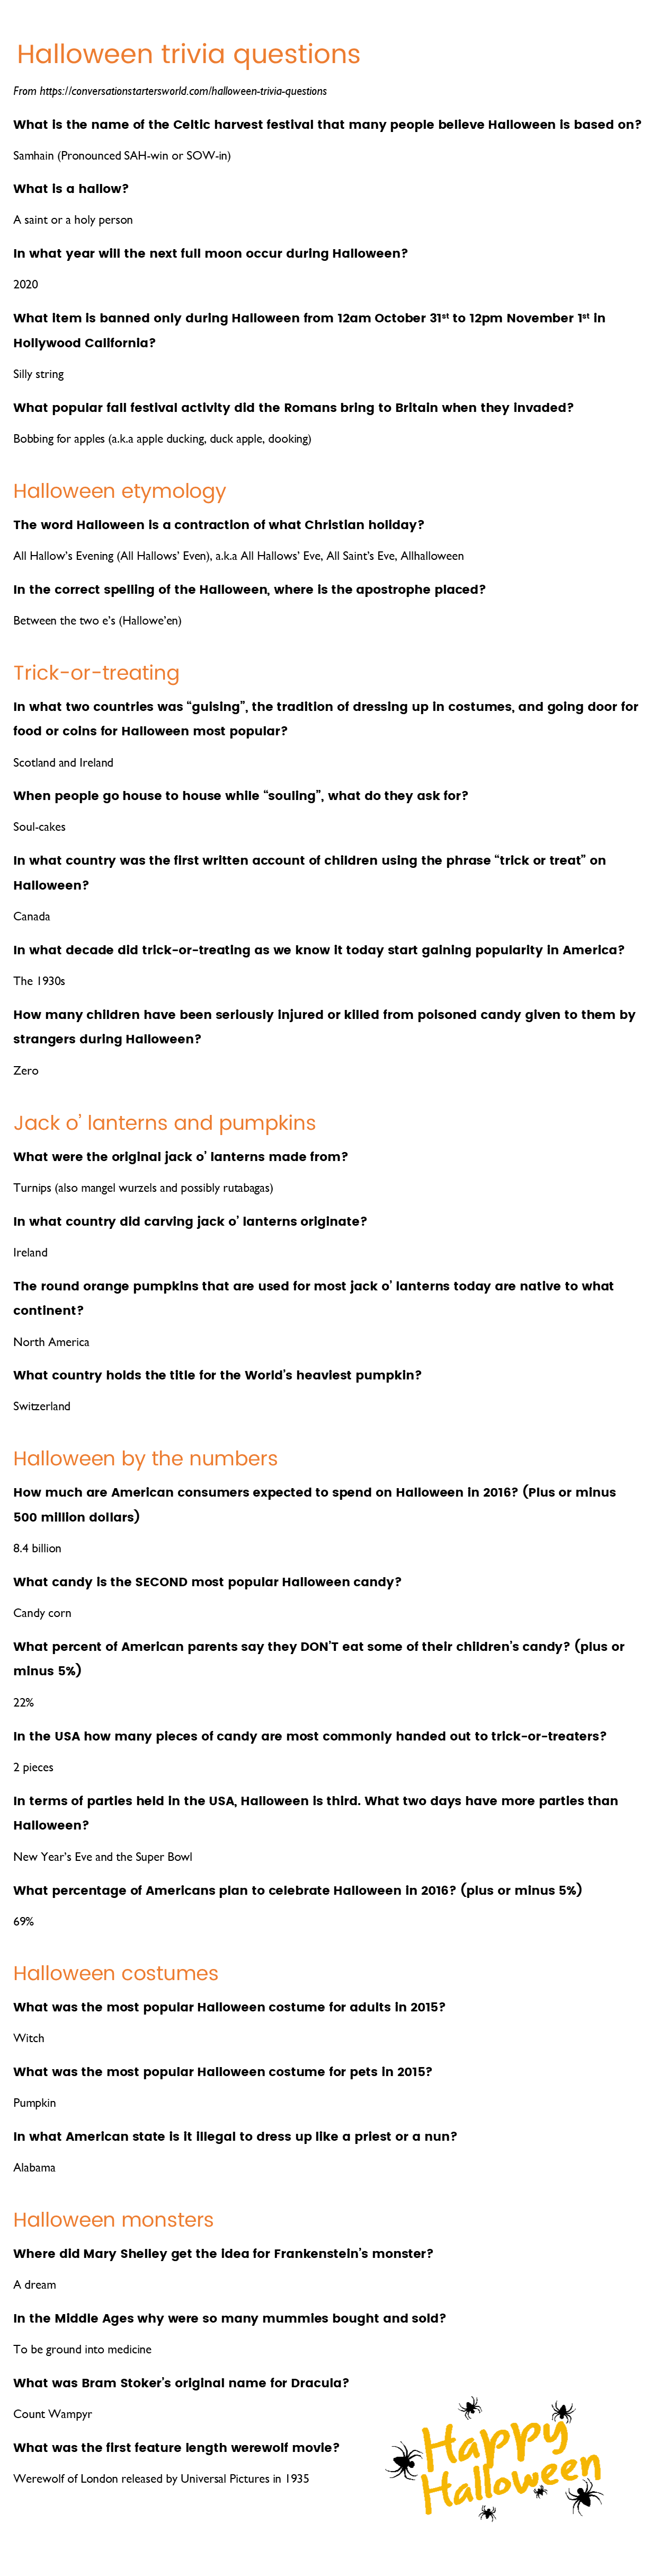 image regarding Food Trivia Questions and Answers Printable named 29 Physically demanding Halloween Trivia Inquiries - How several can yourself